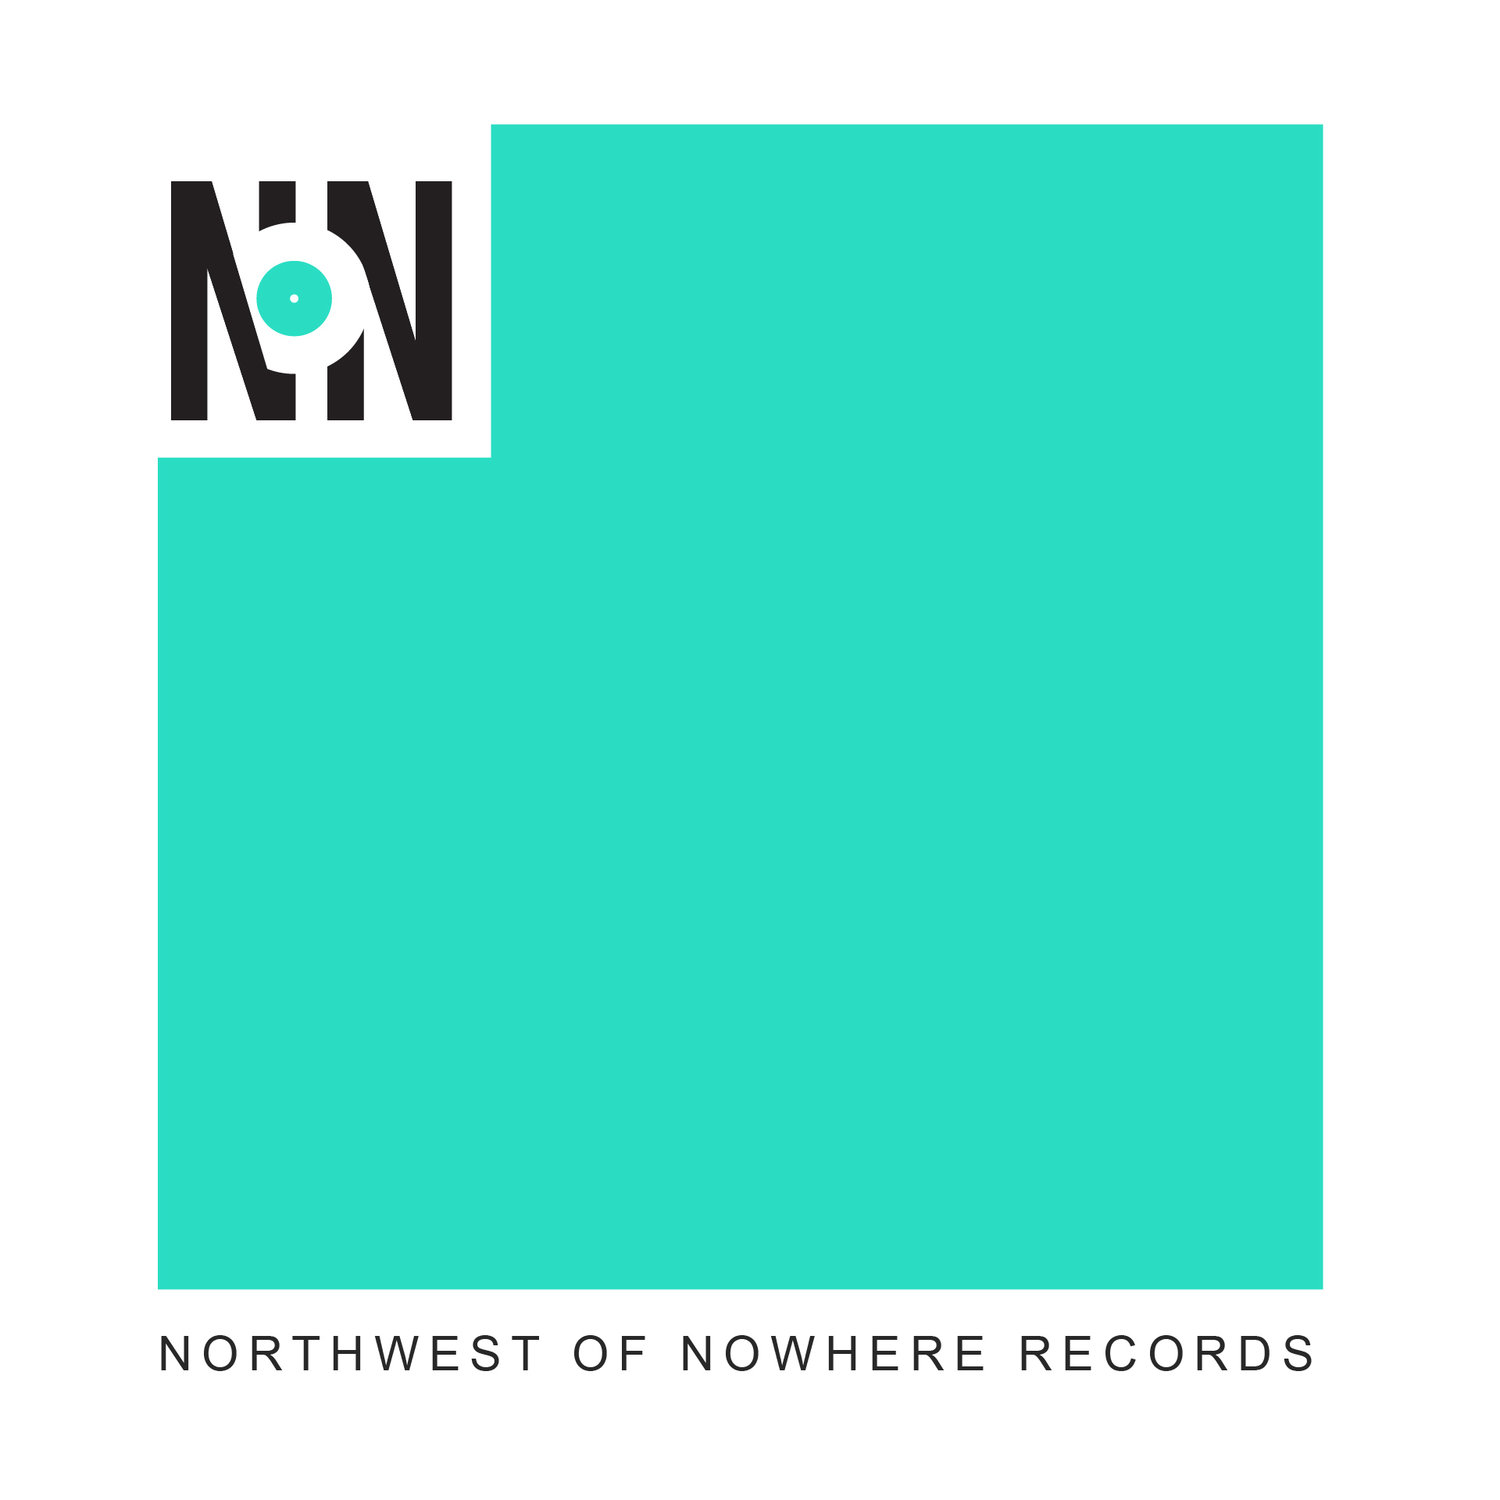 Northwest of Nowhere